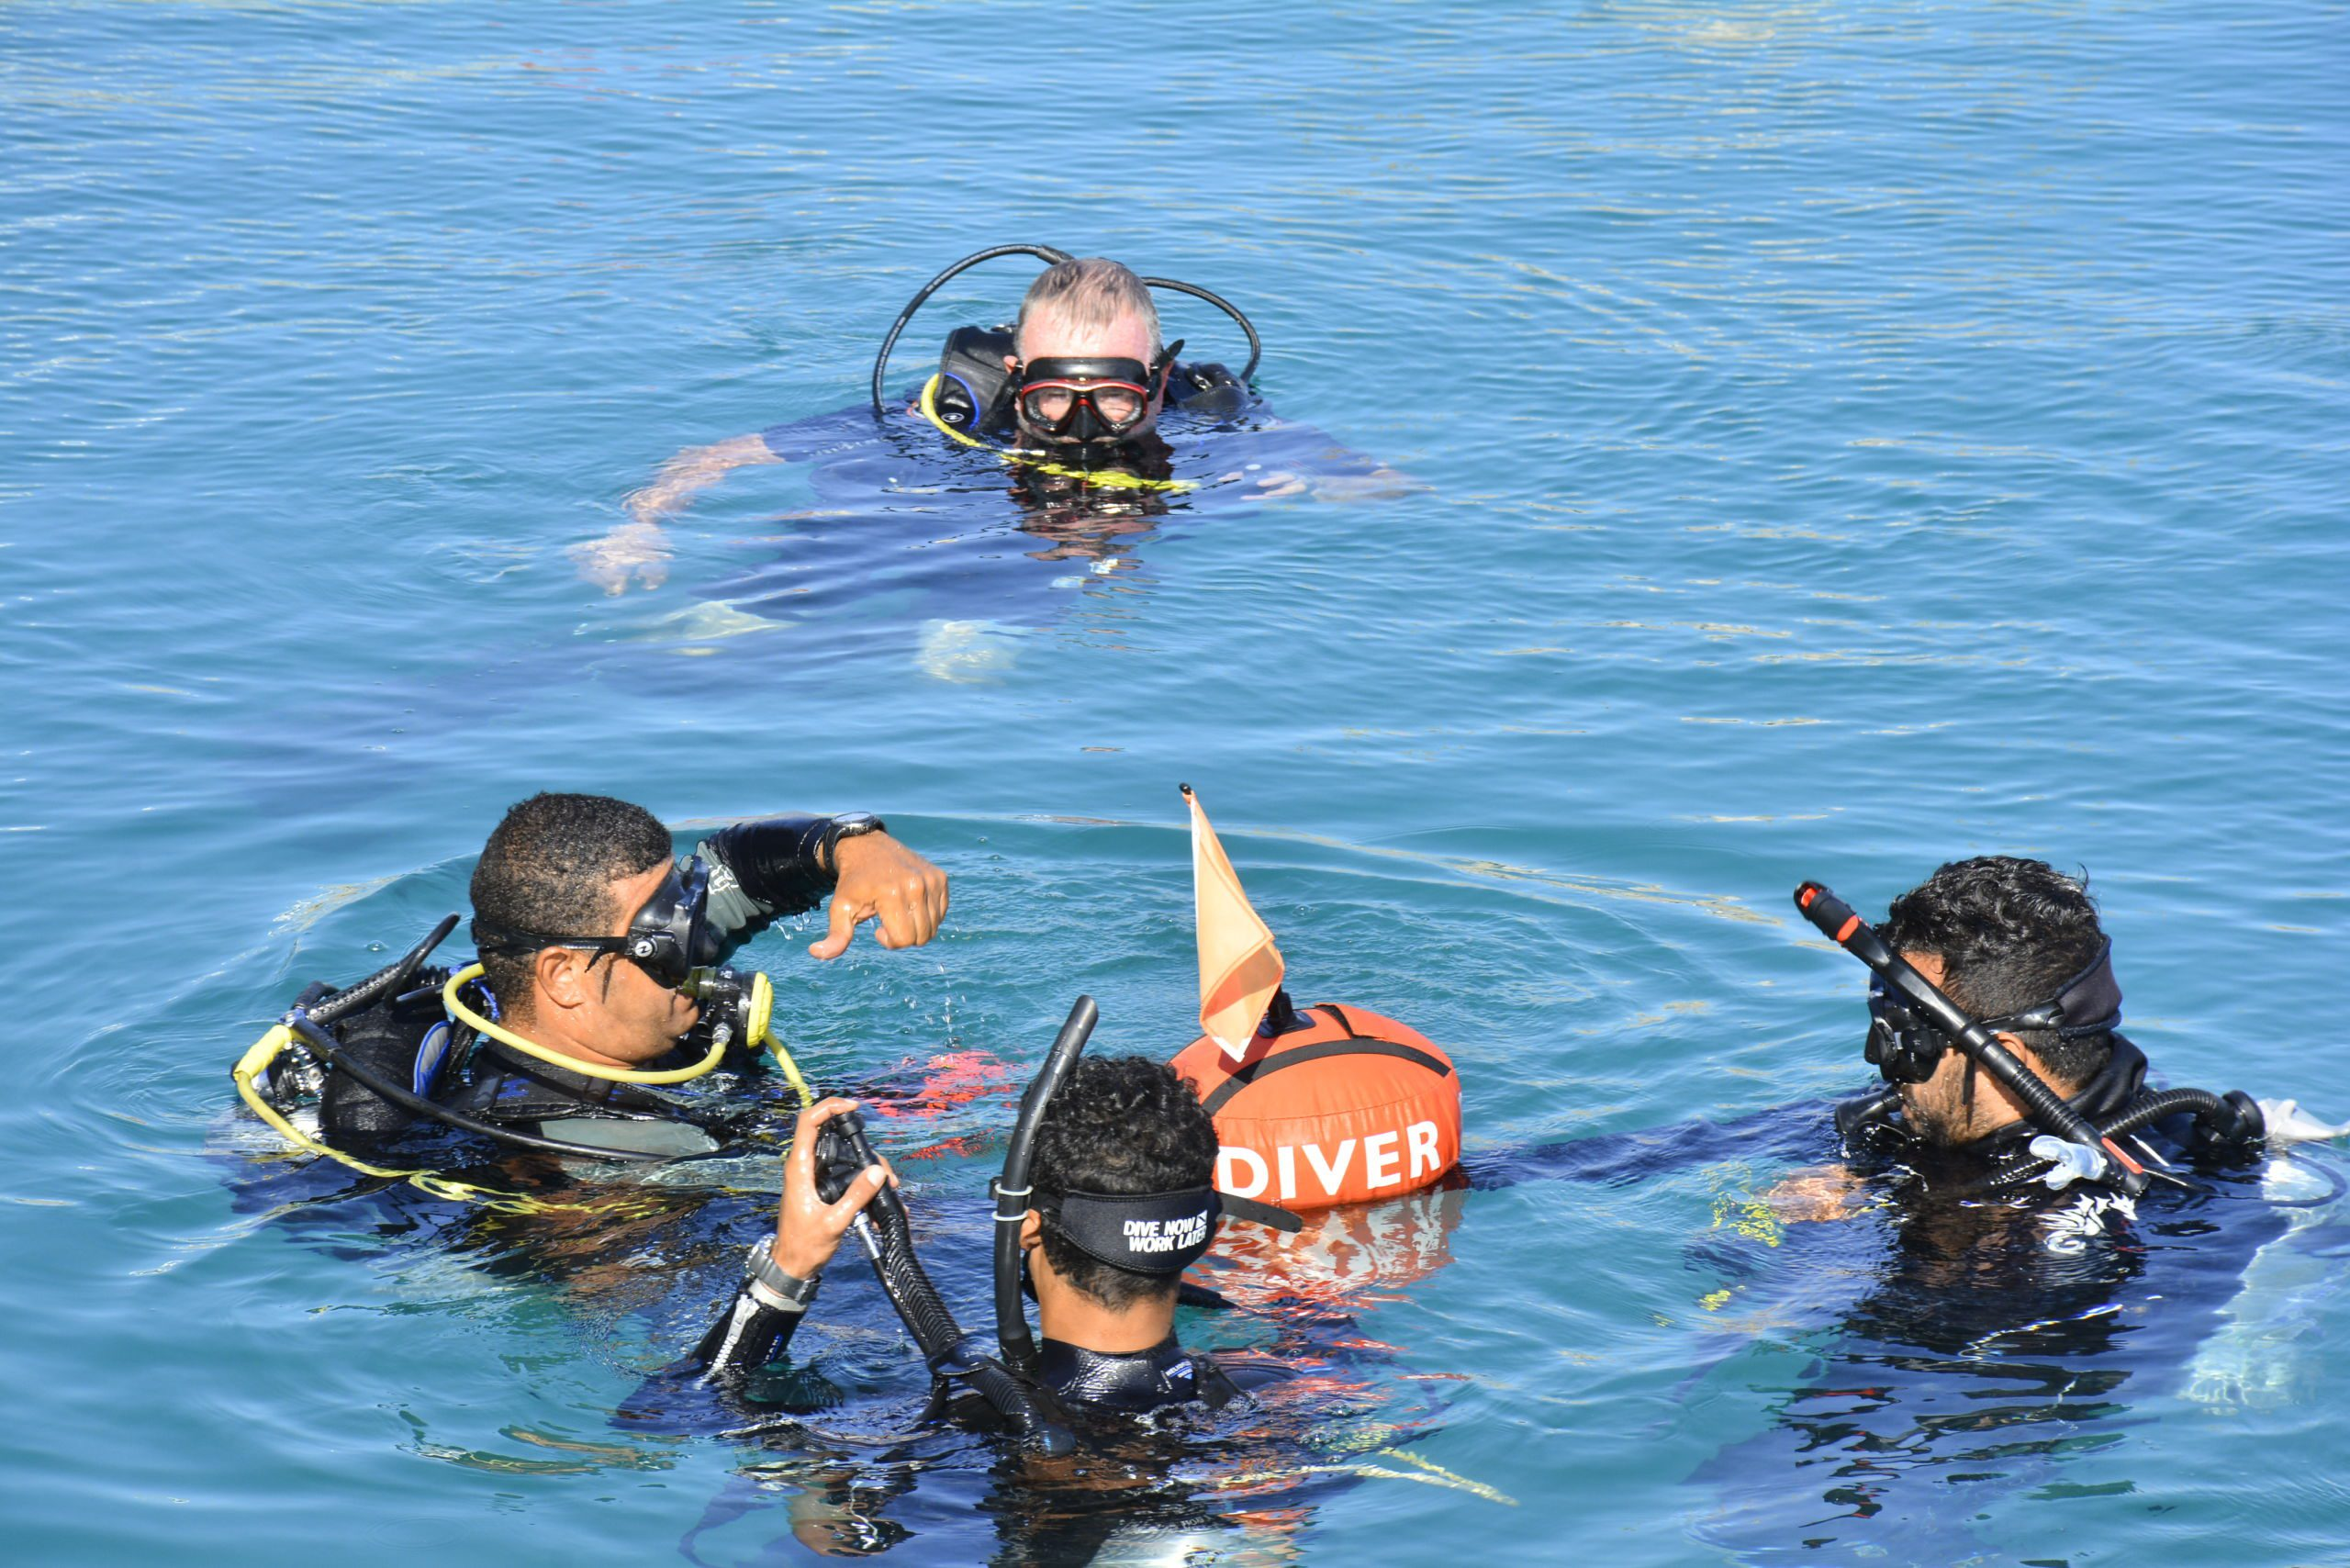 Ahmed Abd El Hakam delivering one of his planned open water lessons to Mahmoud Ibrahim and Moustafa El Shamy during a BSAC Instructor Crossover Course. Adrian Collier, BSAC National Instructor, observes